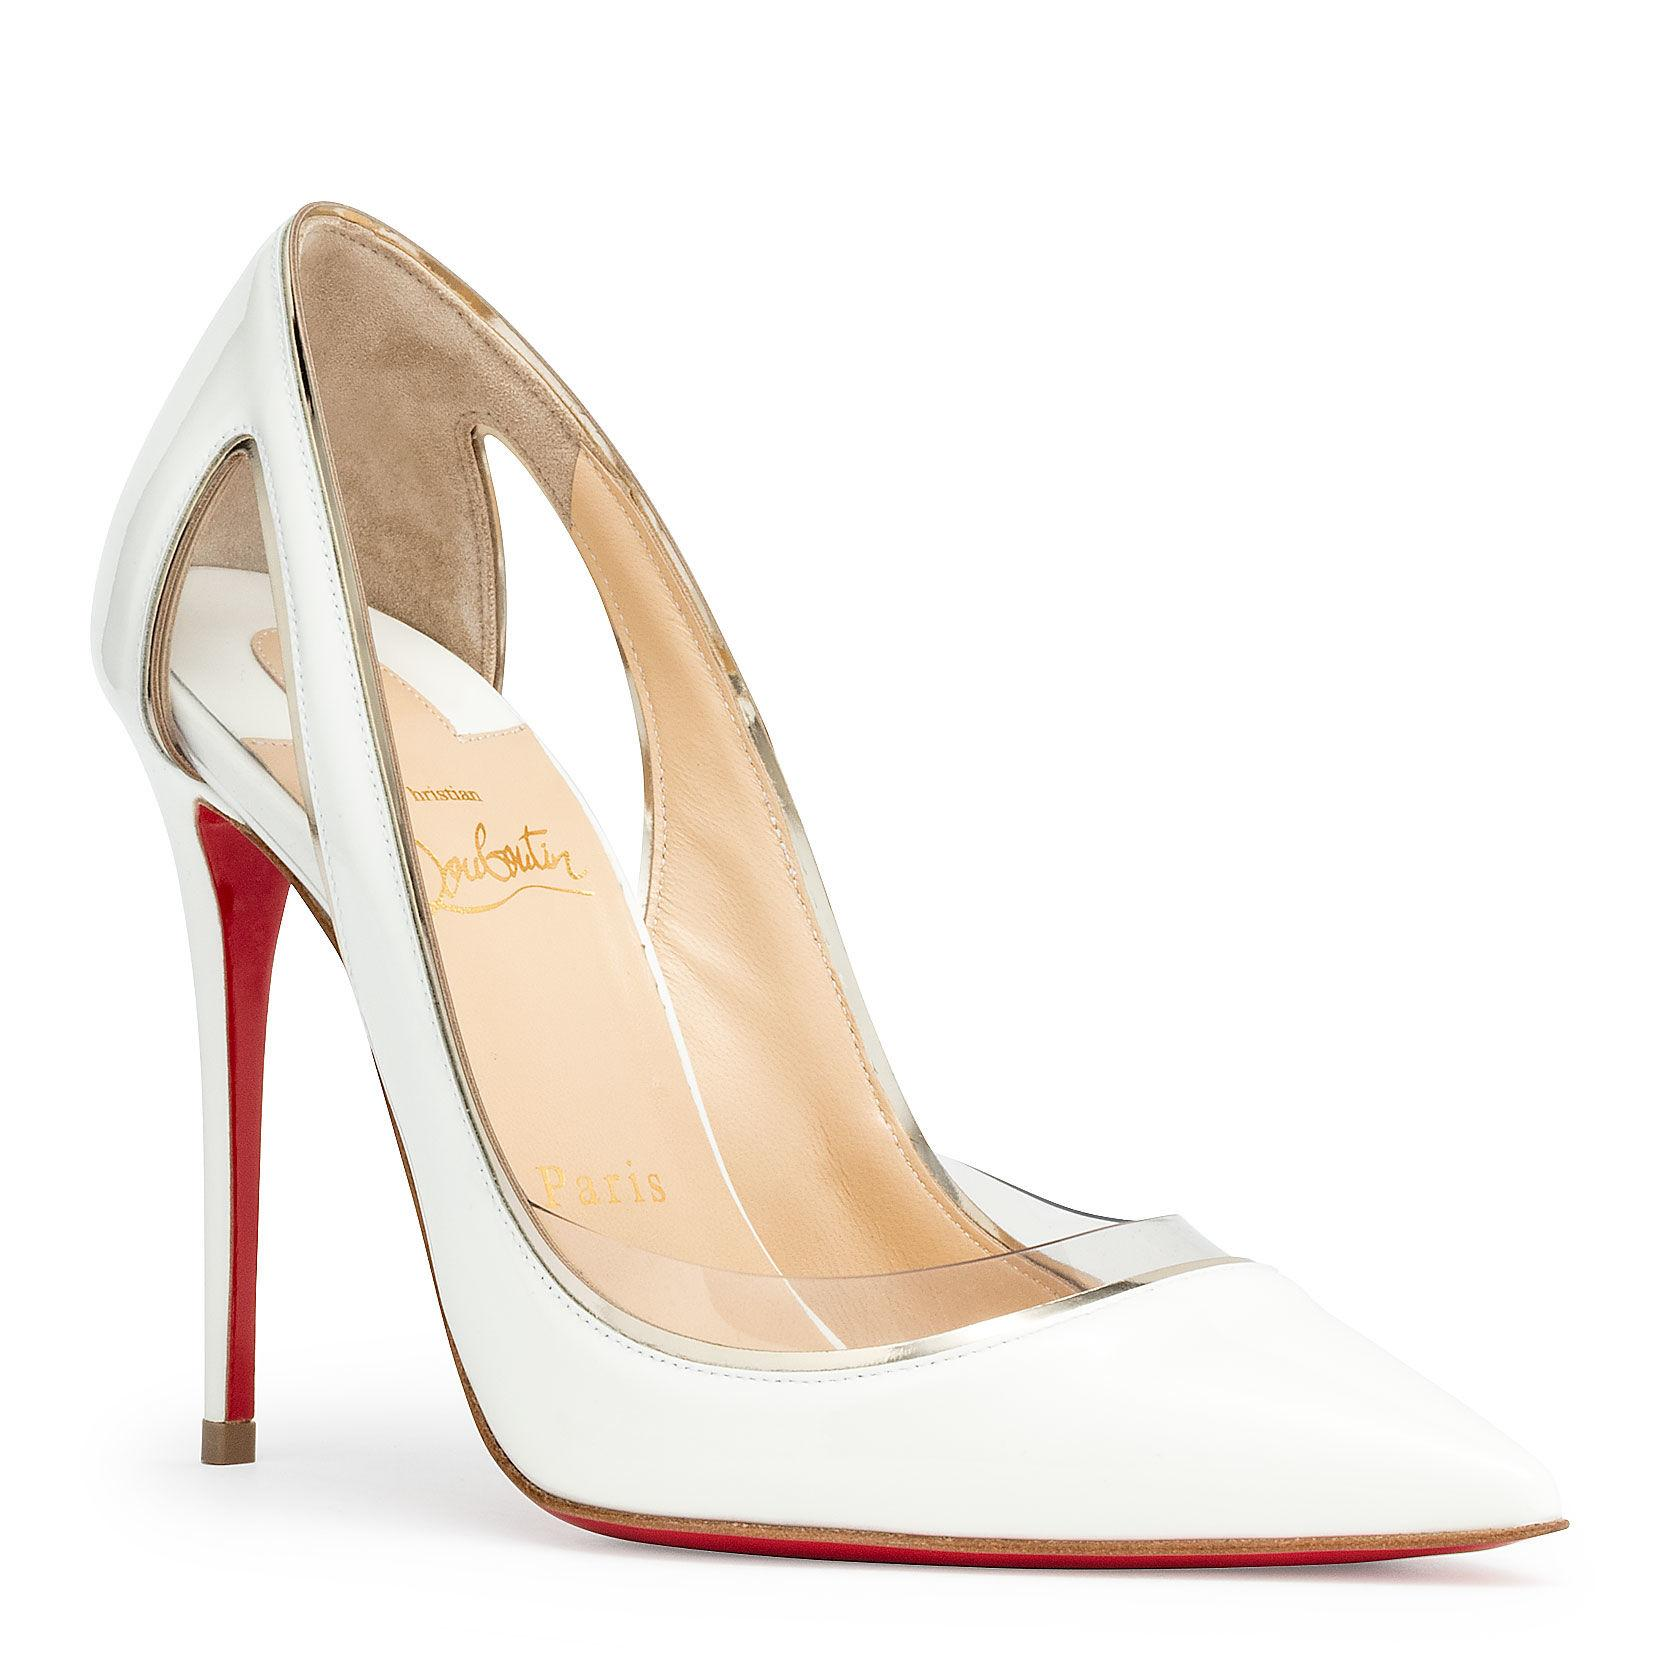 4679ba3ba0c Christian Louboutin. Women s White Cosmo 554 Patent Leather Court Shoes